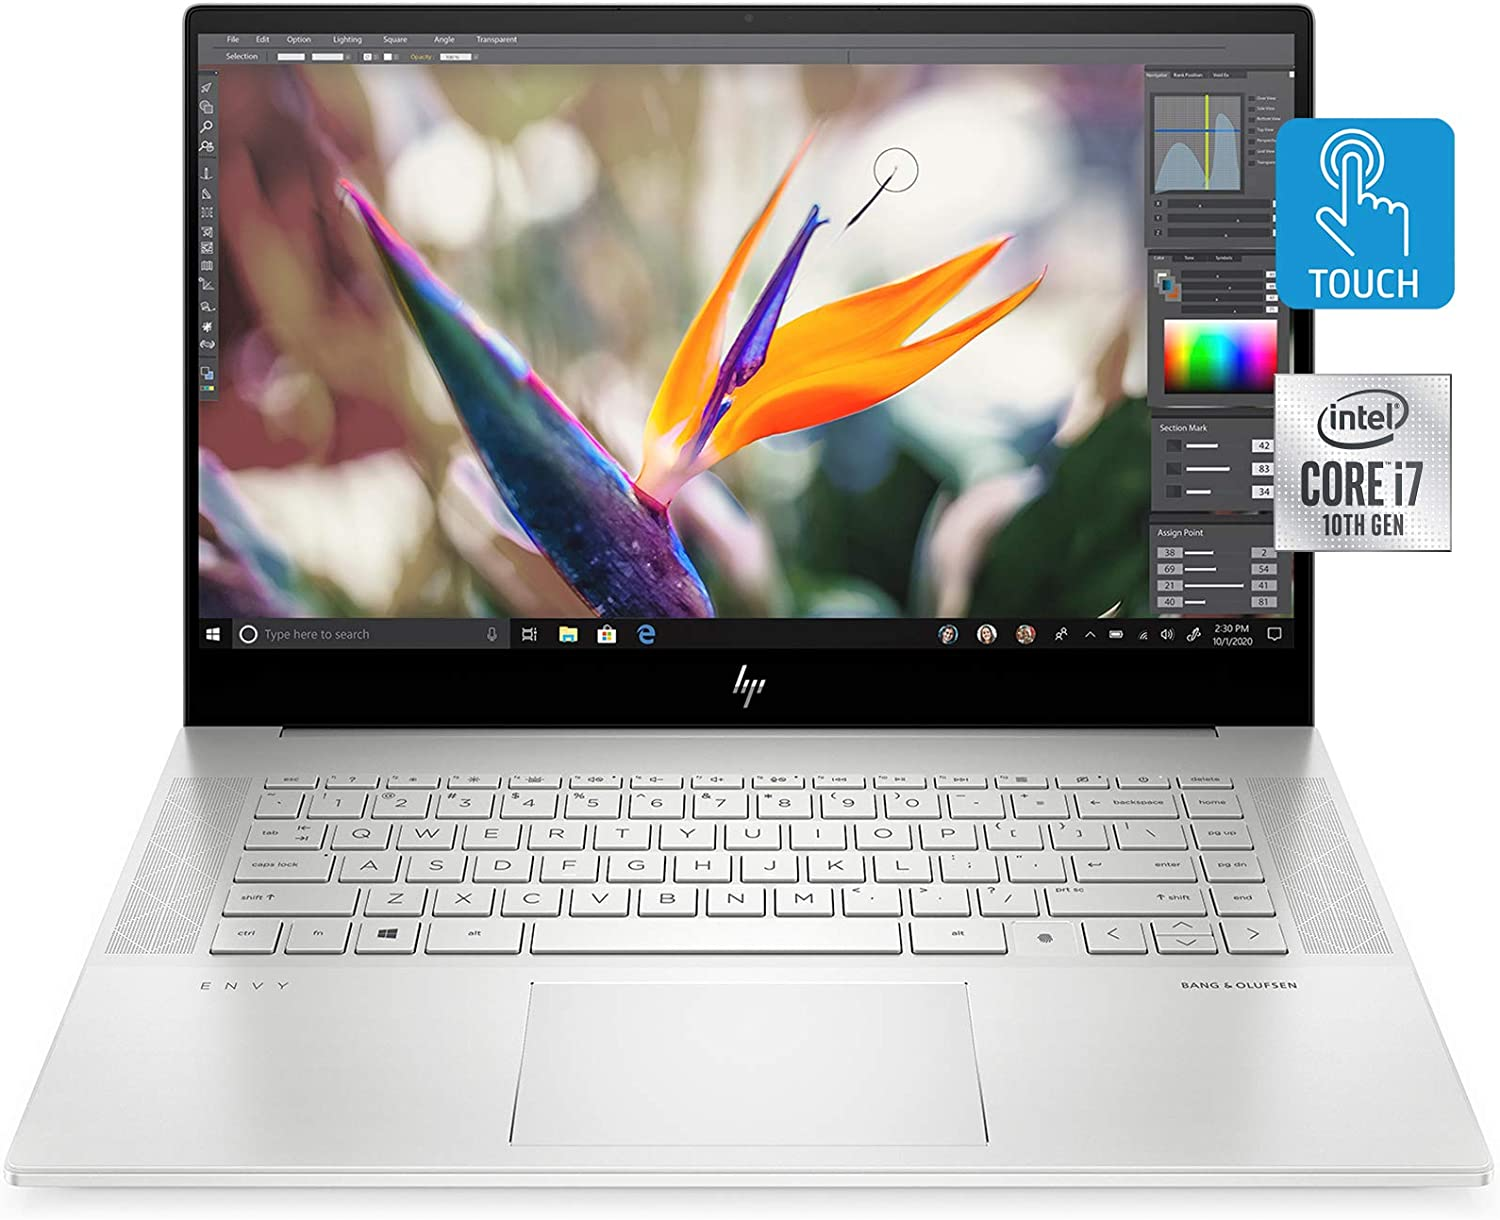 "HP Envy 15 Laptop, Intel Core i7-10750H, NVIDIA GeForce GTX 1650 Ti Graphics, 16 GB RAM, 512 GB SSD Storage,15.6"" Full HD Touchscreen, Windows 10 Home, Fingerprint Reader (15-ep0010nr, 2020 Model)"